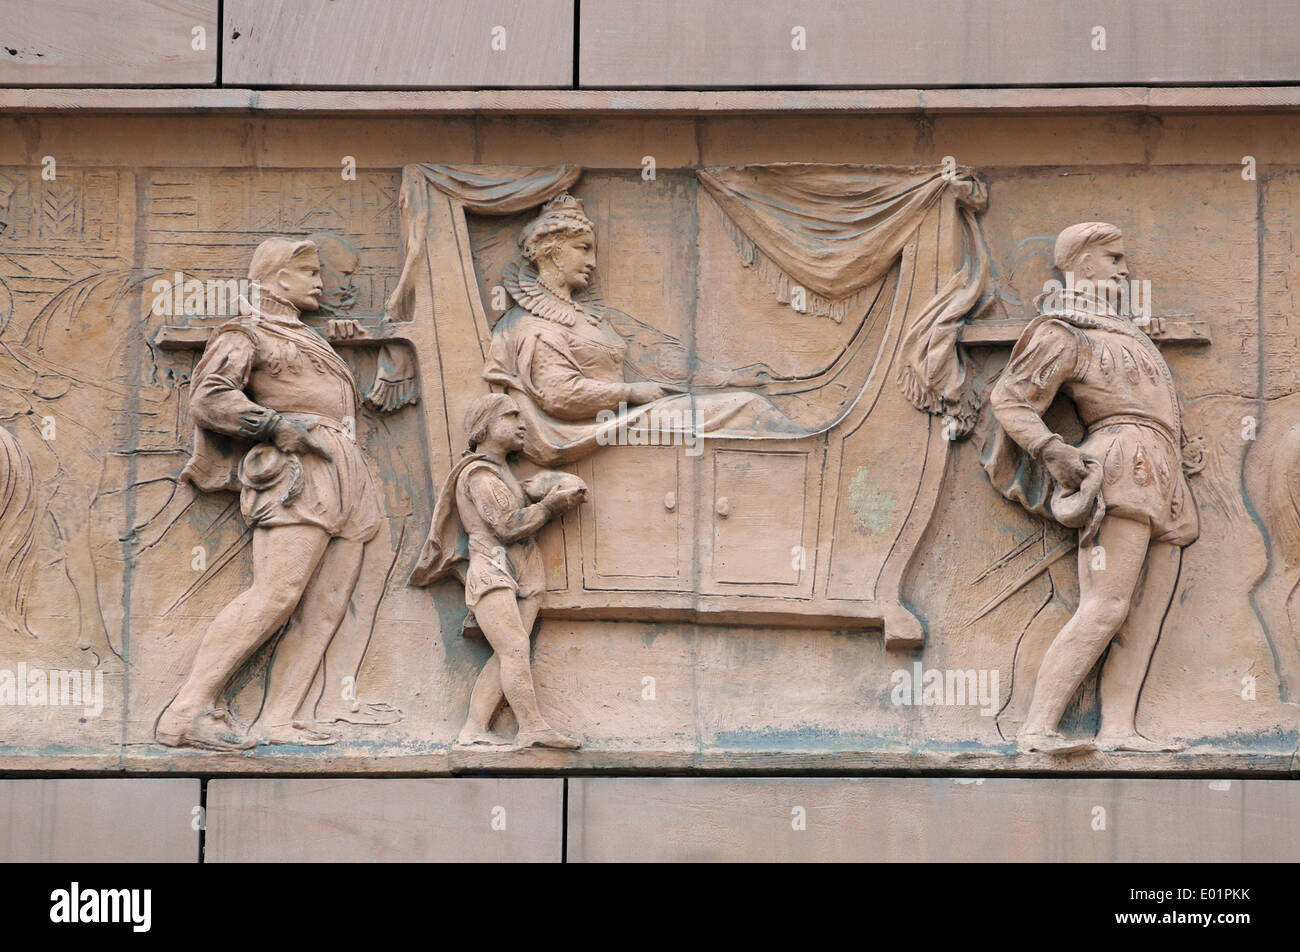 London, England, UK. No1 Poultry (James Stirling, 1994) historical frieze on the facade: royal procession - Queen Elizabeth I - Stock Image